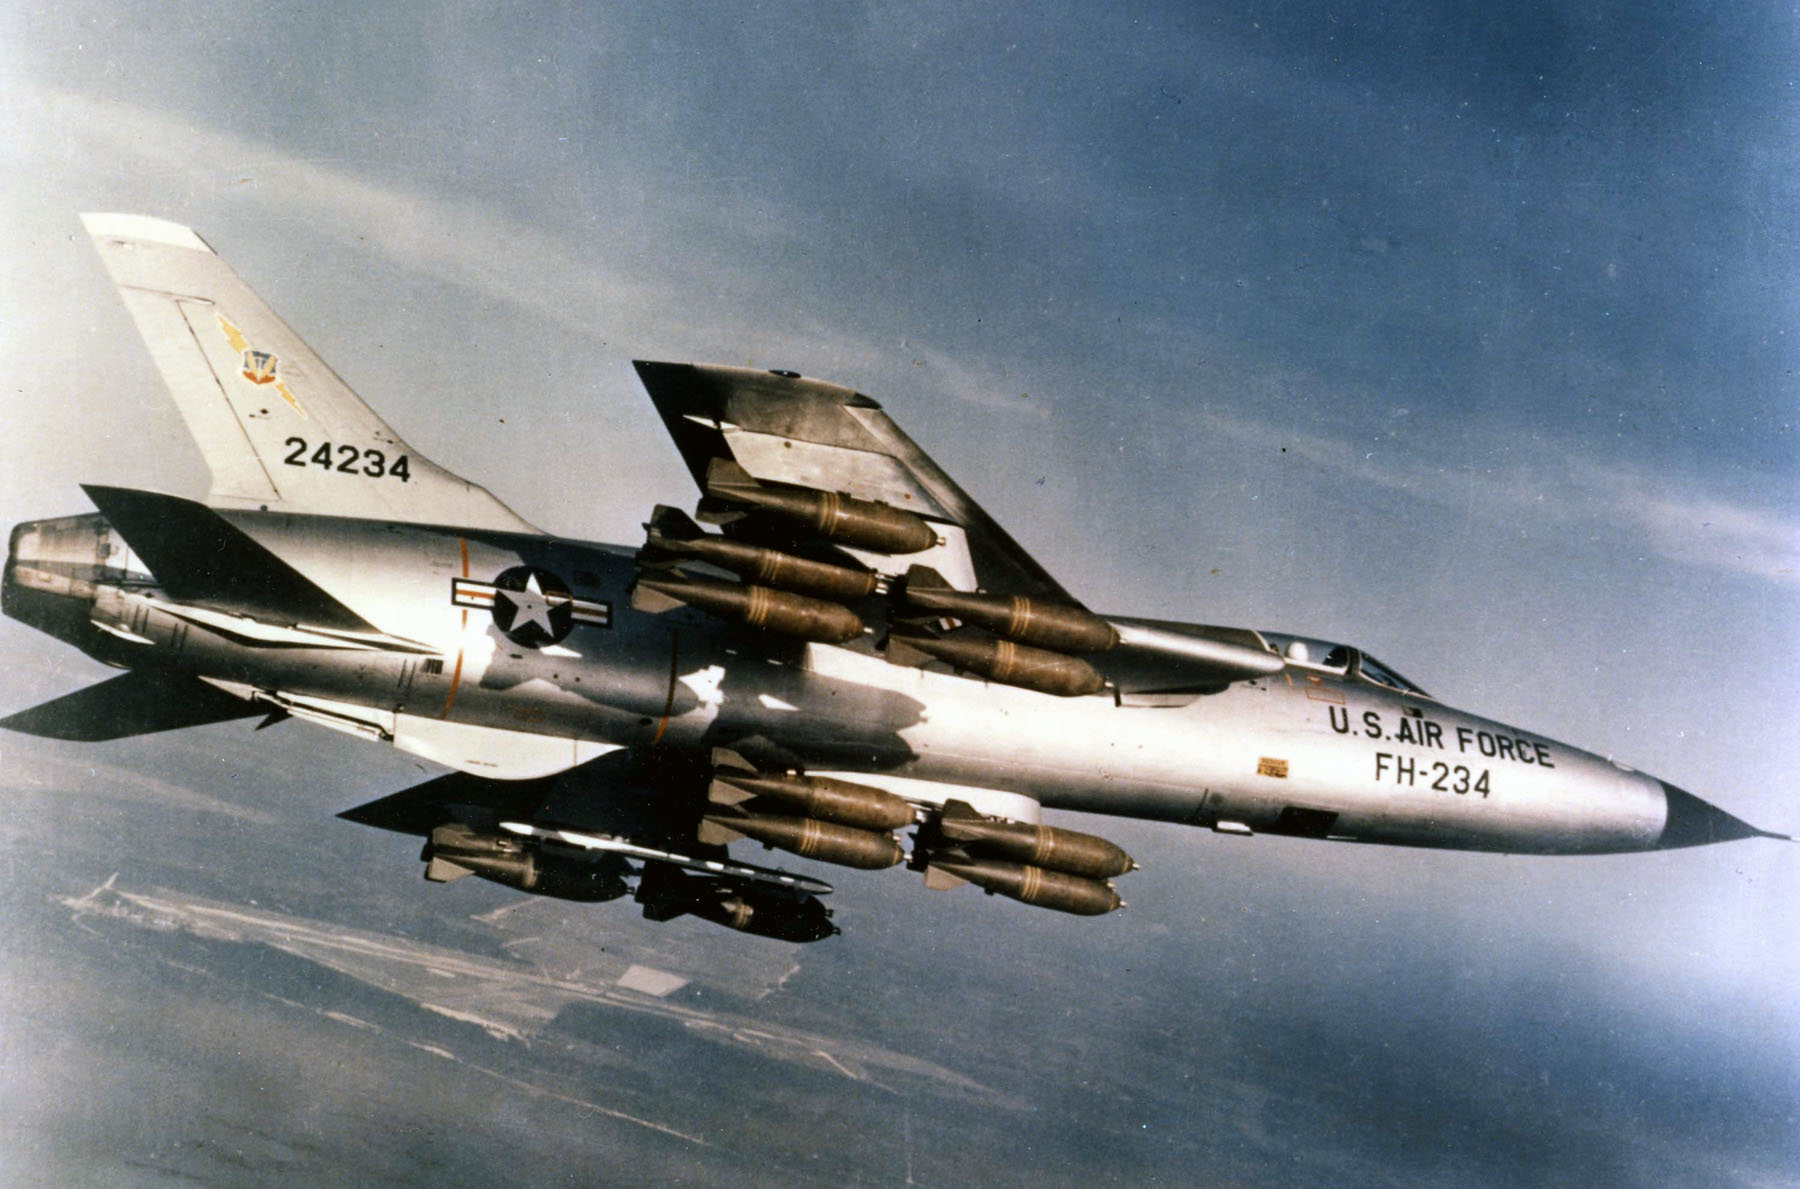 https://upload.wikimedia.org/wikipedia/commons/f/fa/Republic_F-105D-30-RE_%28SN_62-4234%29_in_flight_with_full_bomb_load_060901-F-1234S-013.jpg